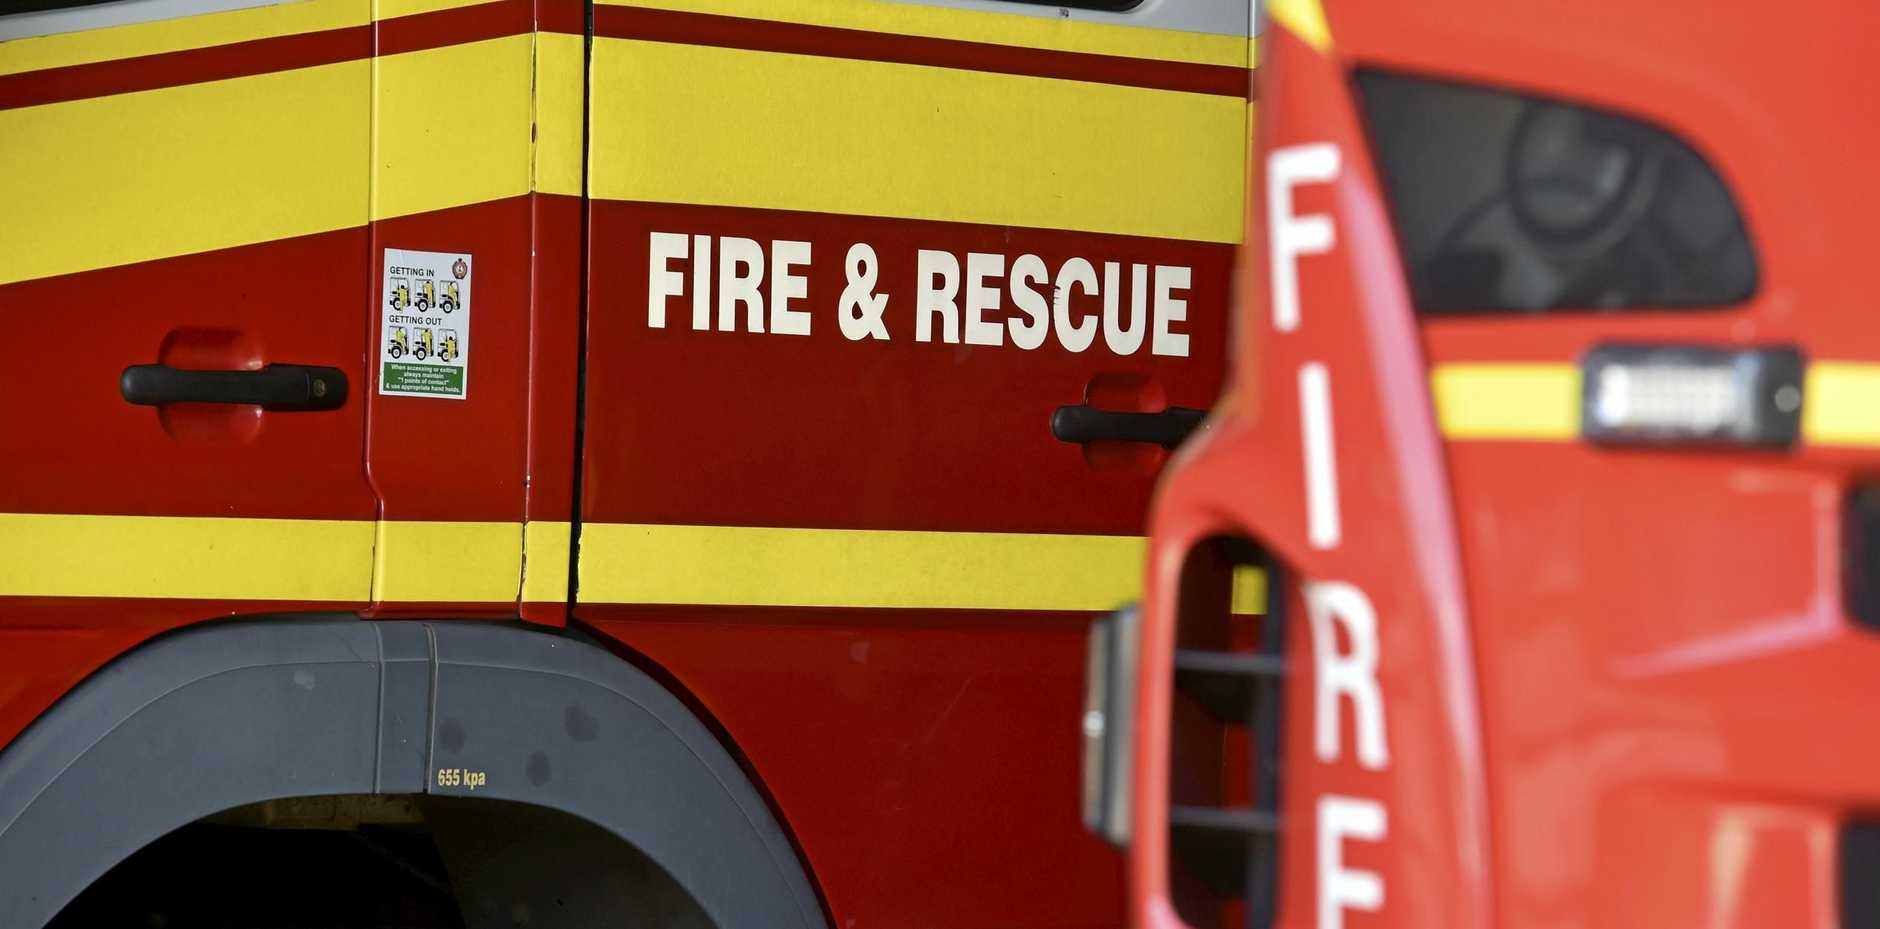 HOUSE FIRE: Crews were called to Rose St last night where a fire had started in the bathroom of a house.